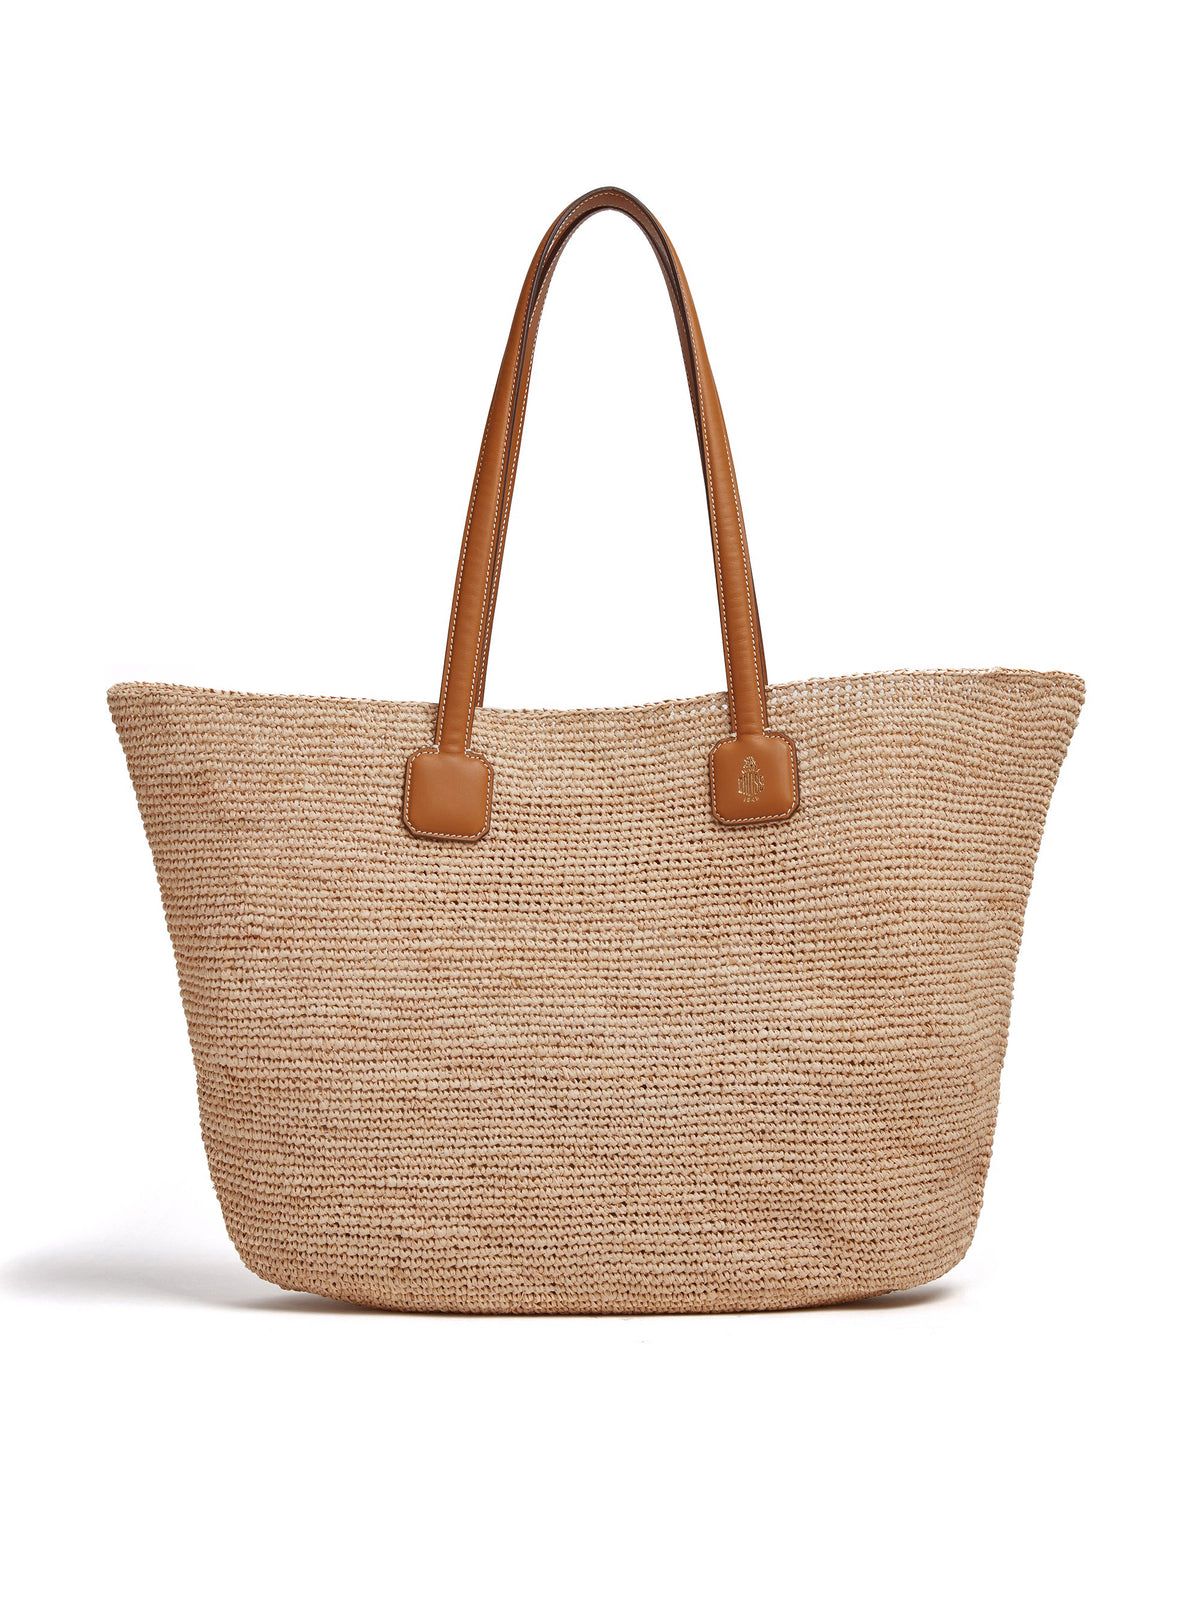 Mark Cross Côte d'Azur Raffia & Leather Tote Bag Soft Calf Luggage / Natural Raffia Front